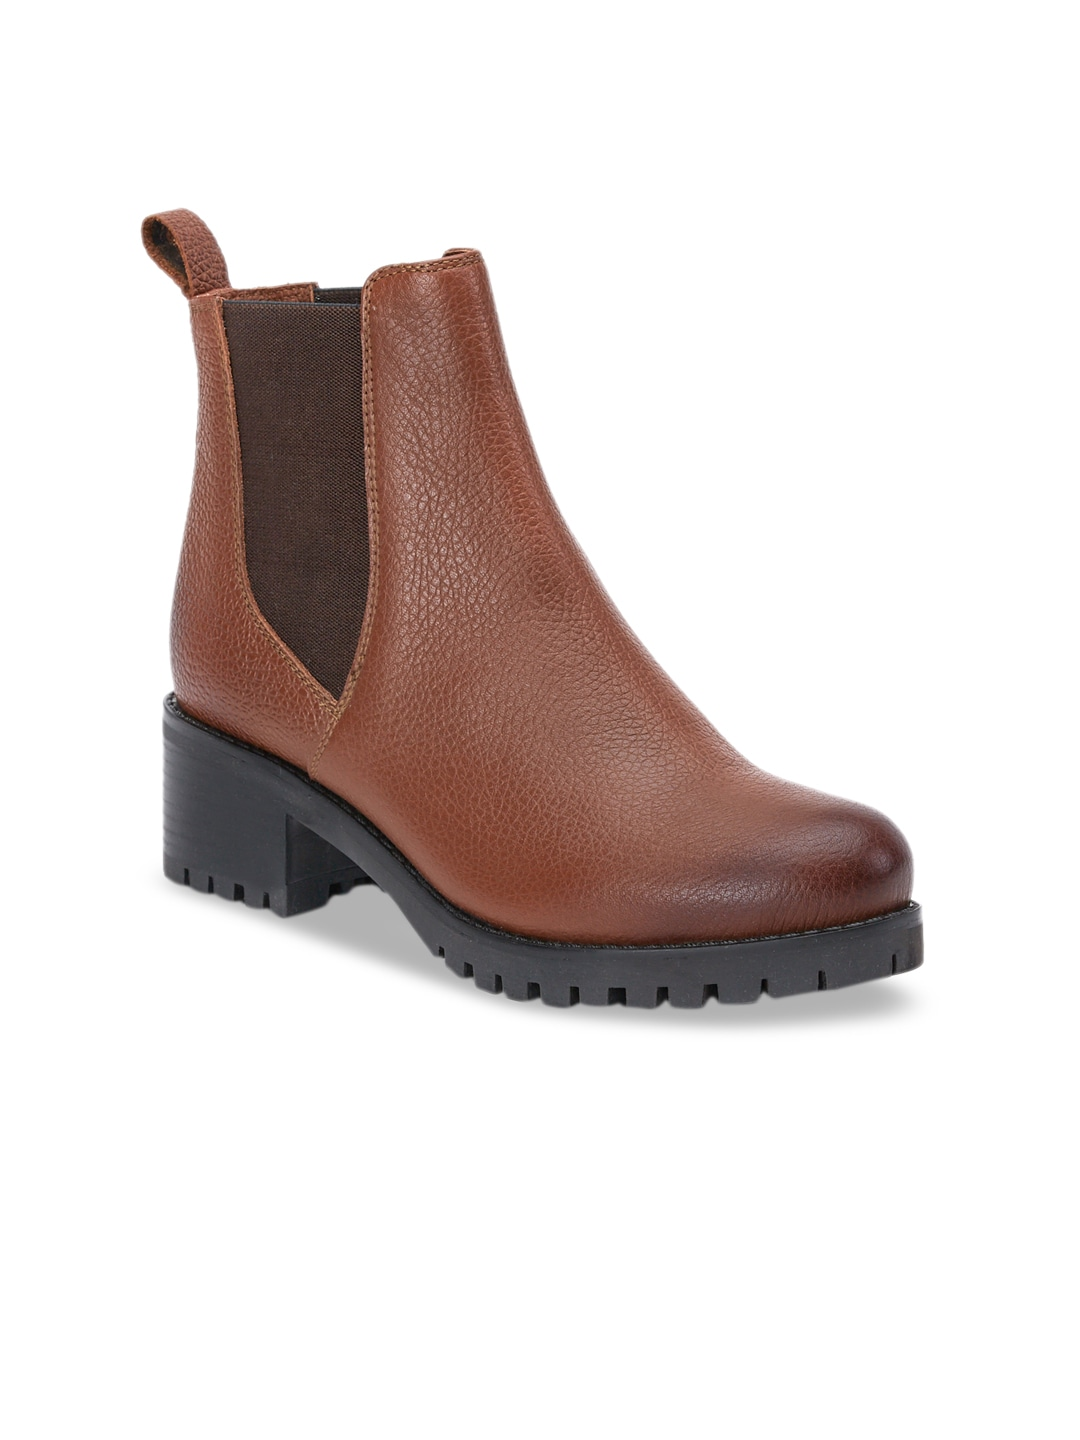 Tan Brown Solid Leather Heeled Boots